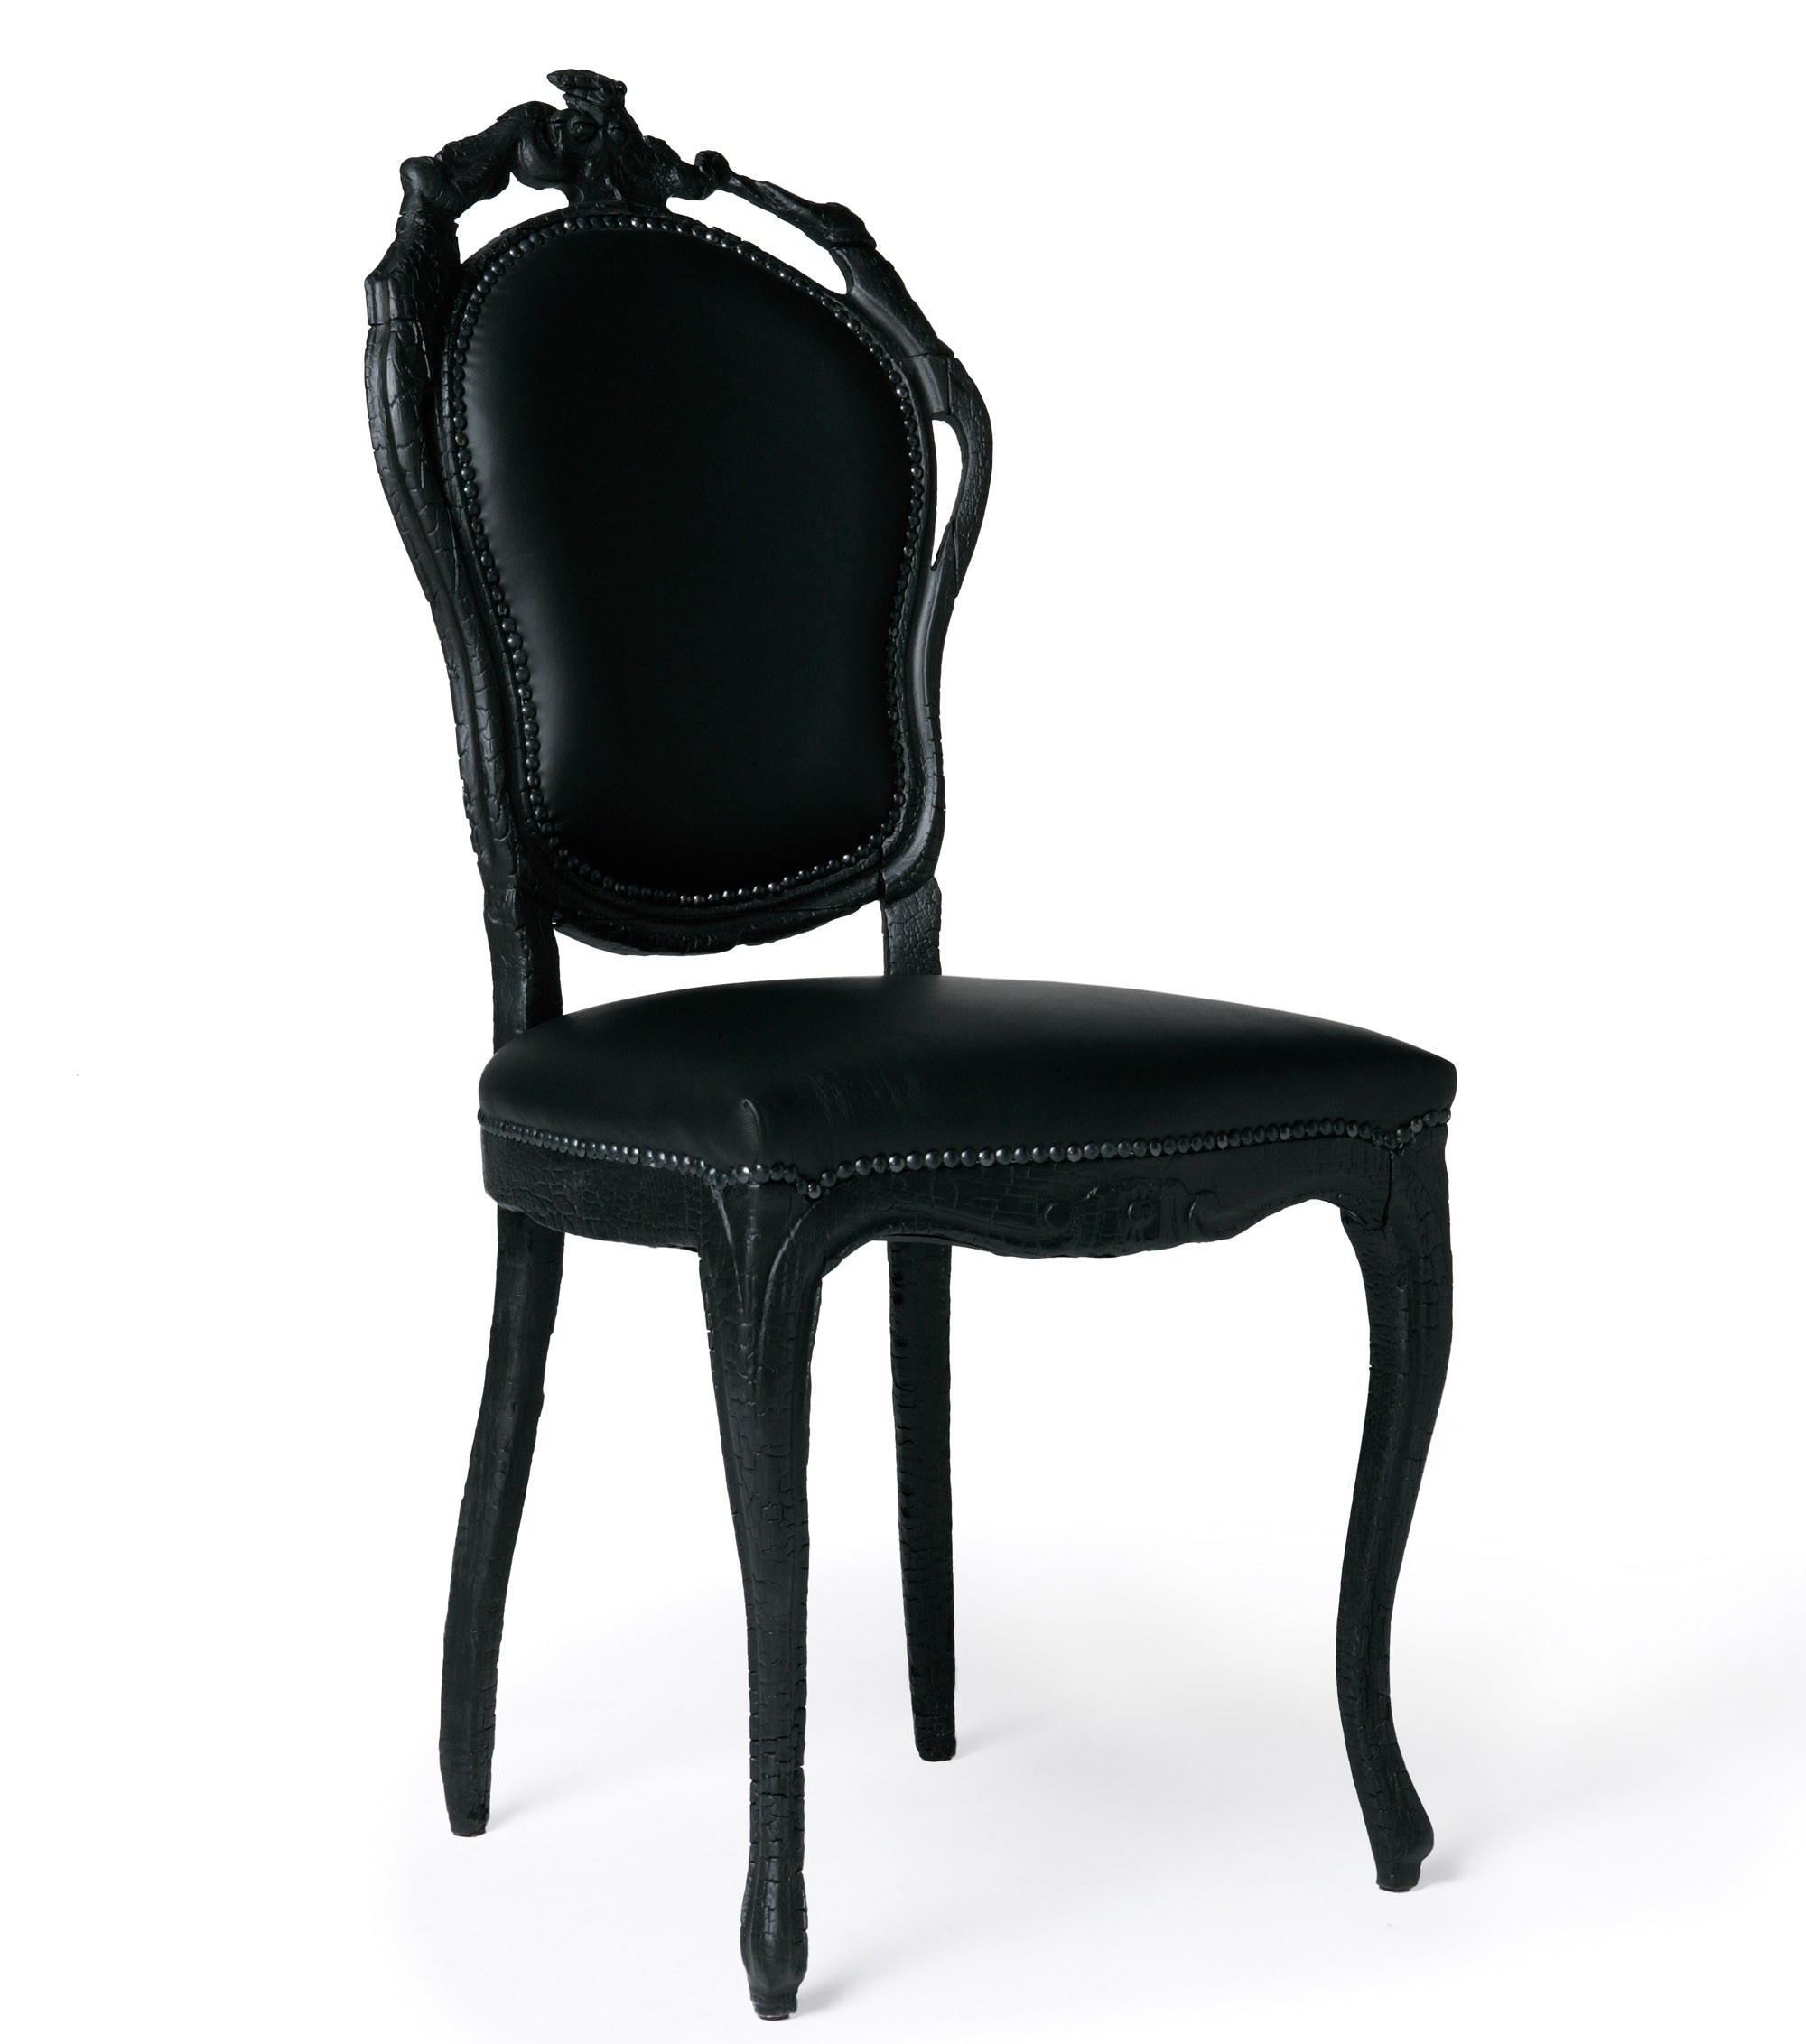 Moooi Smoke Dining Chair